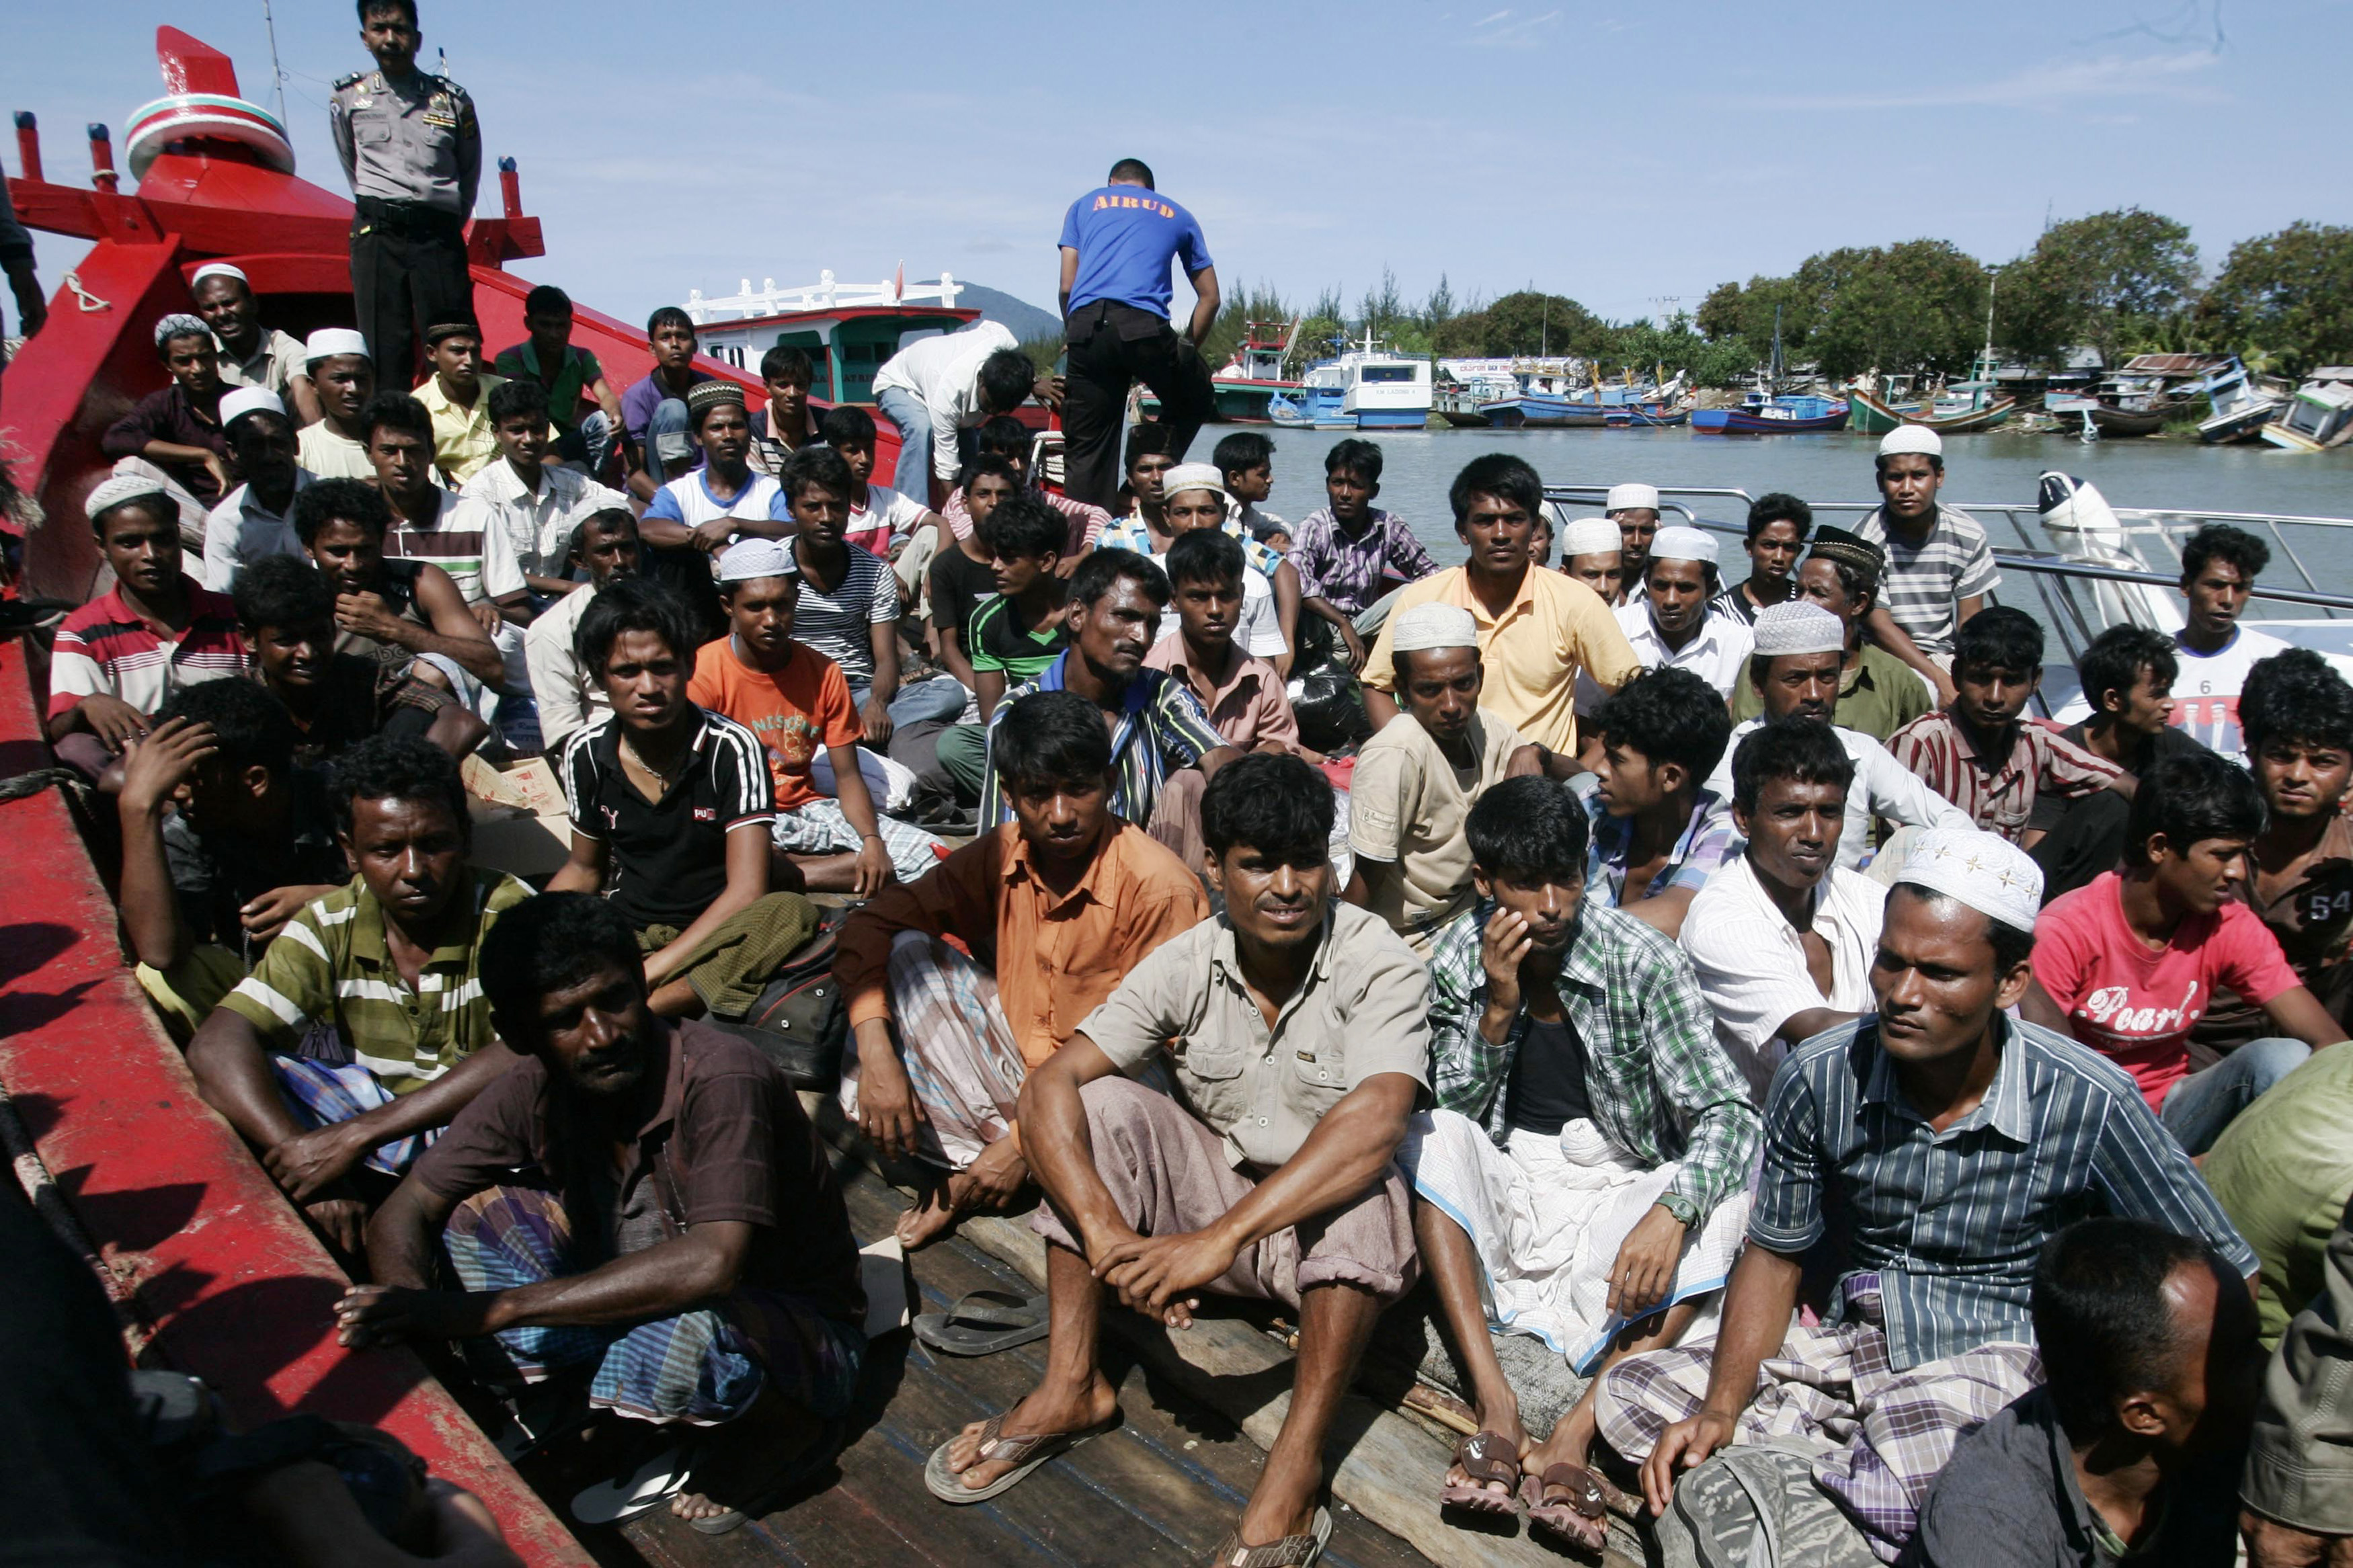 Ethnic Rohingya refugees from Burma sit on a wooden boat as they wait for transportation to a temporary shelter in Aceh Besar after arriving at Lampulo habour April 8, 2013.